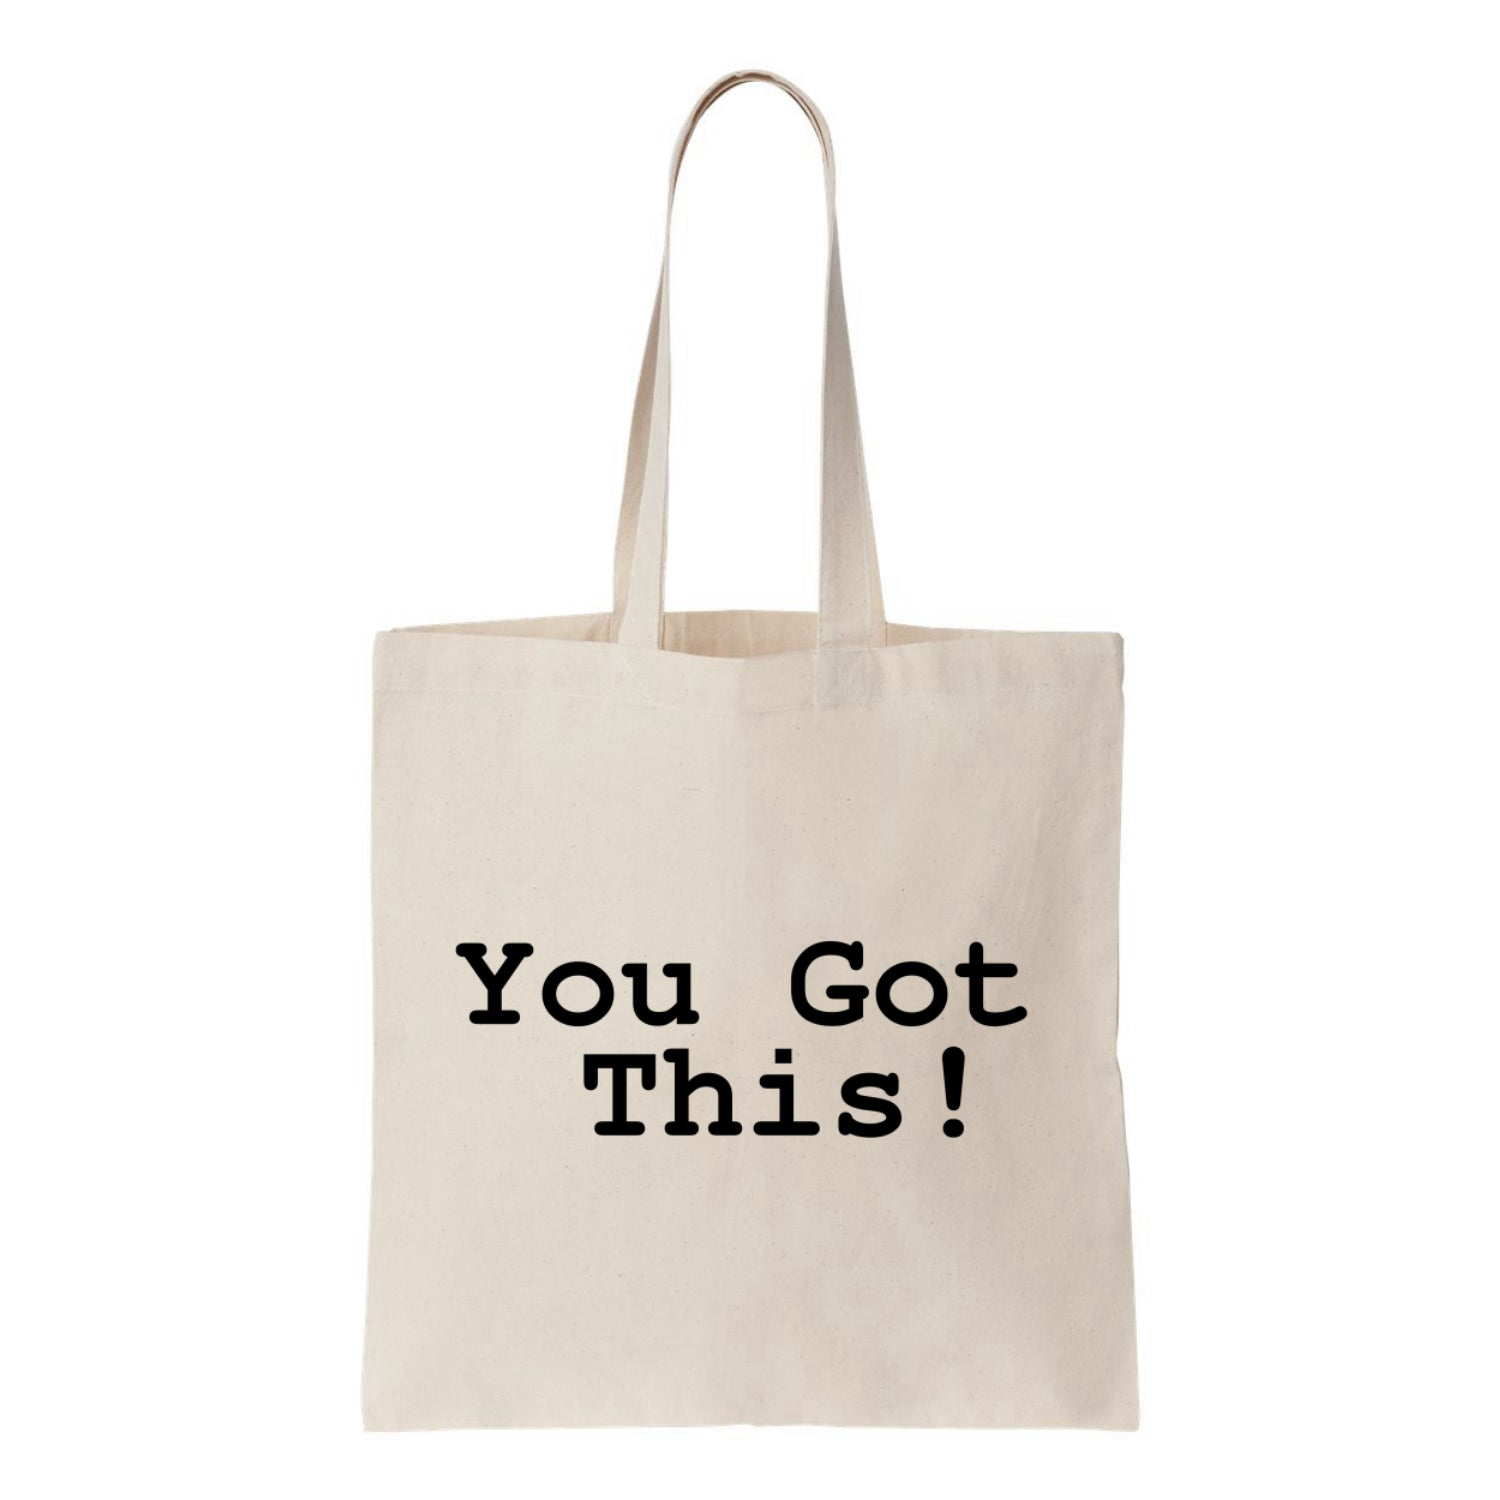 You Got This! Canvas Canvas Tote